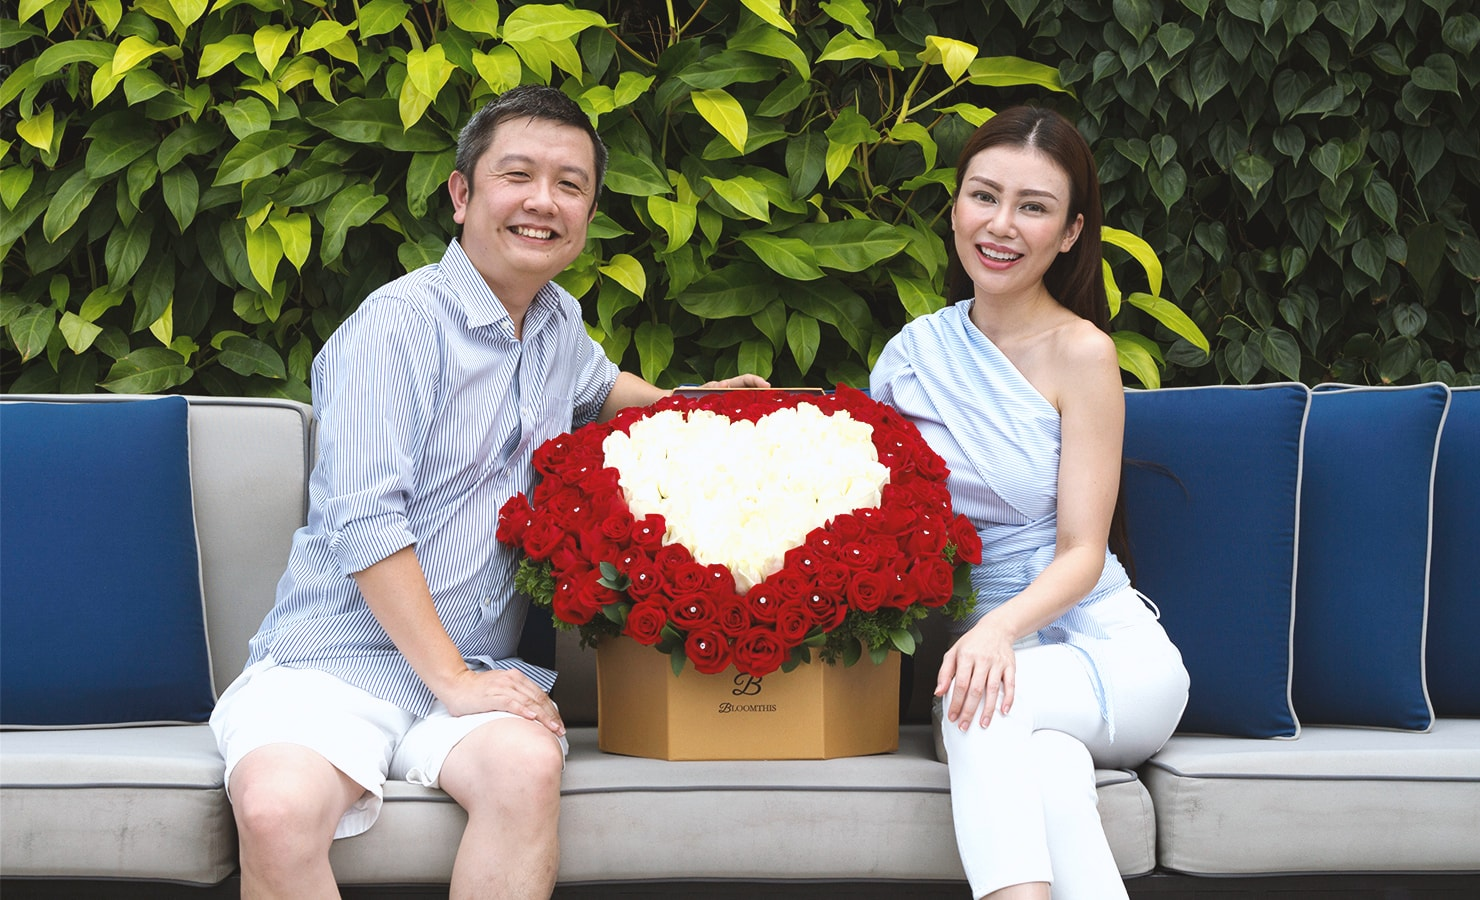 unfold-your-love-story-with-vince-tan-melissa seow